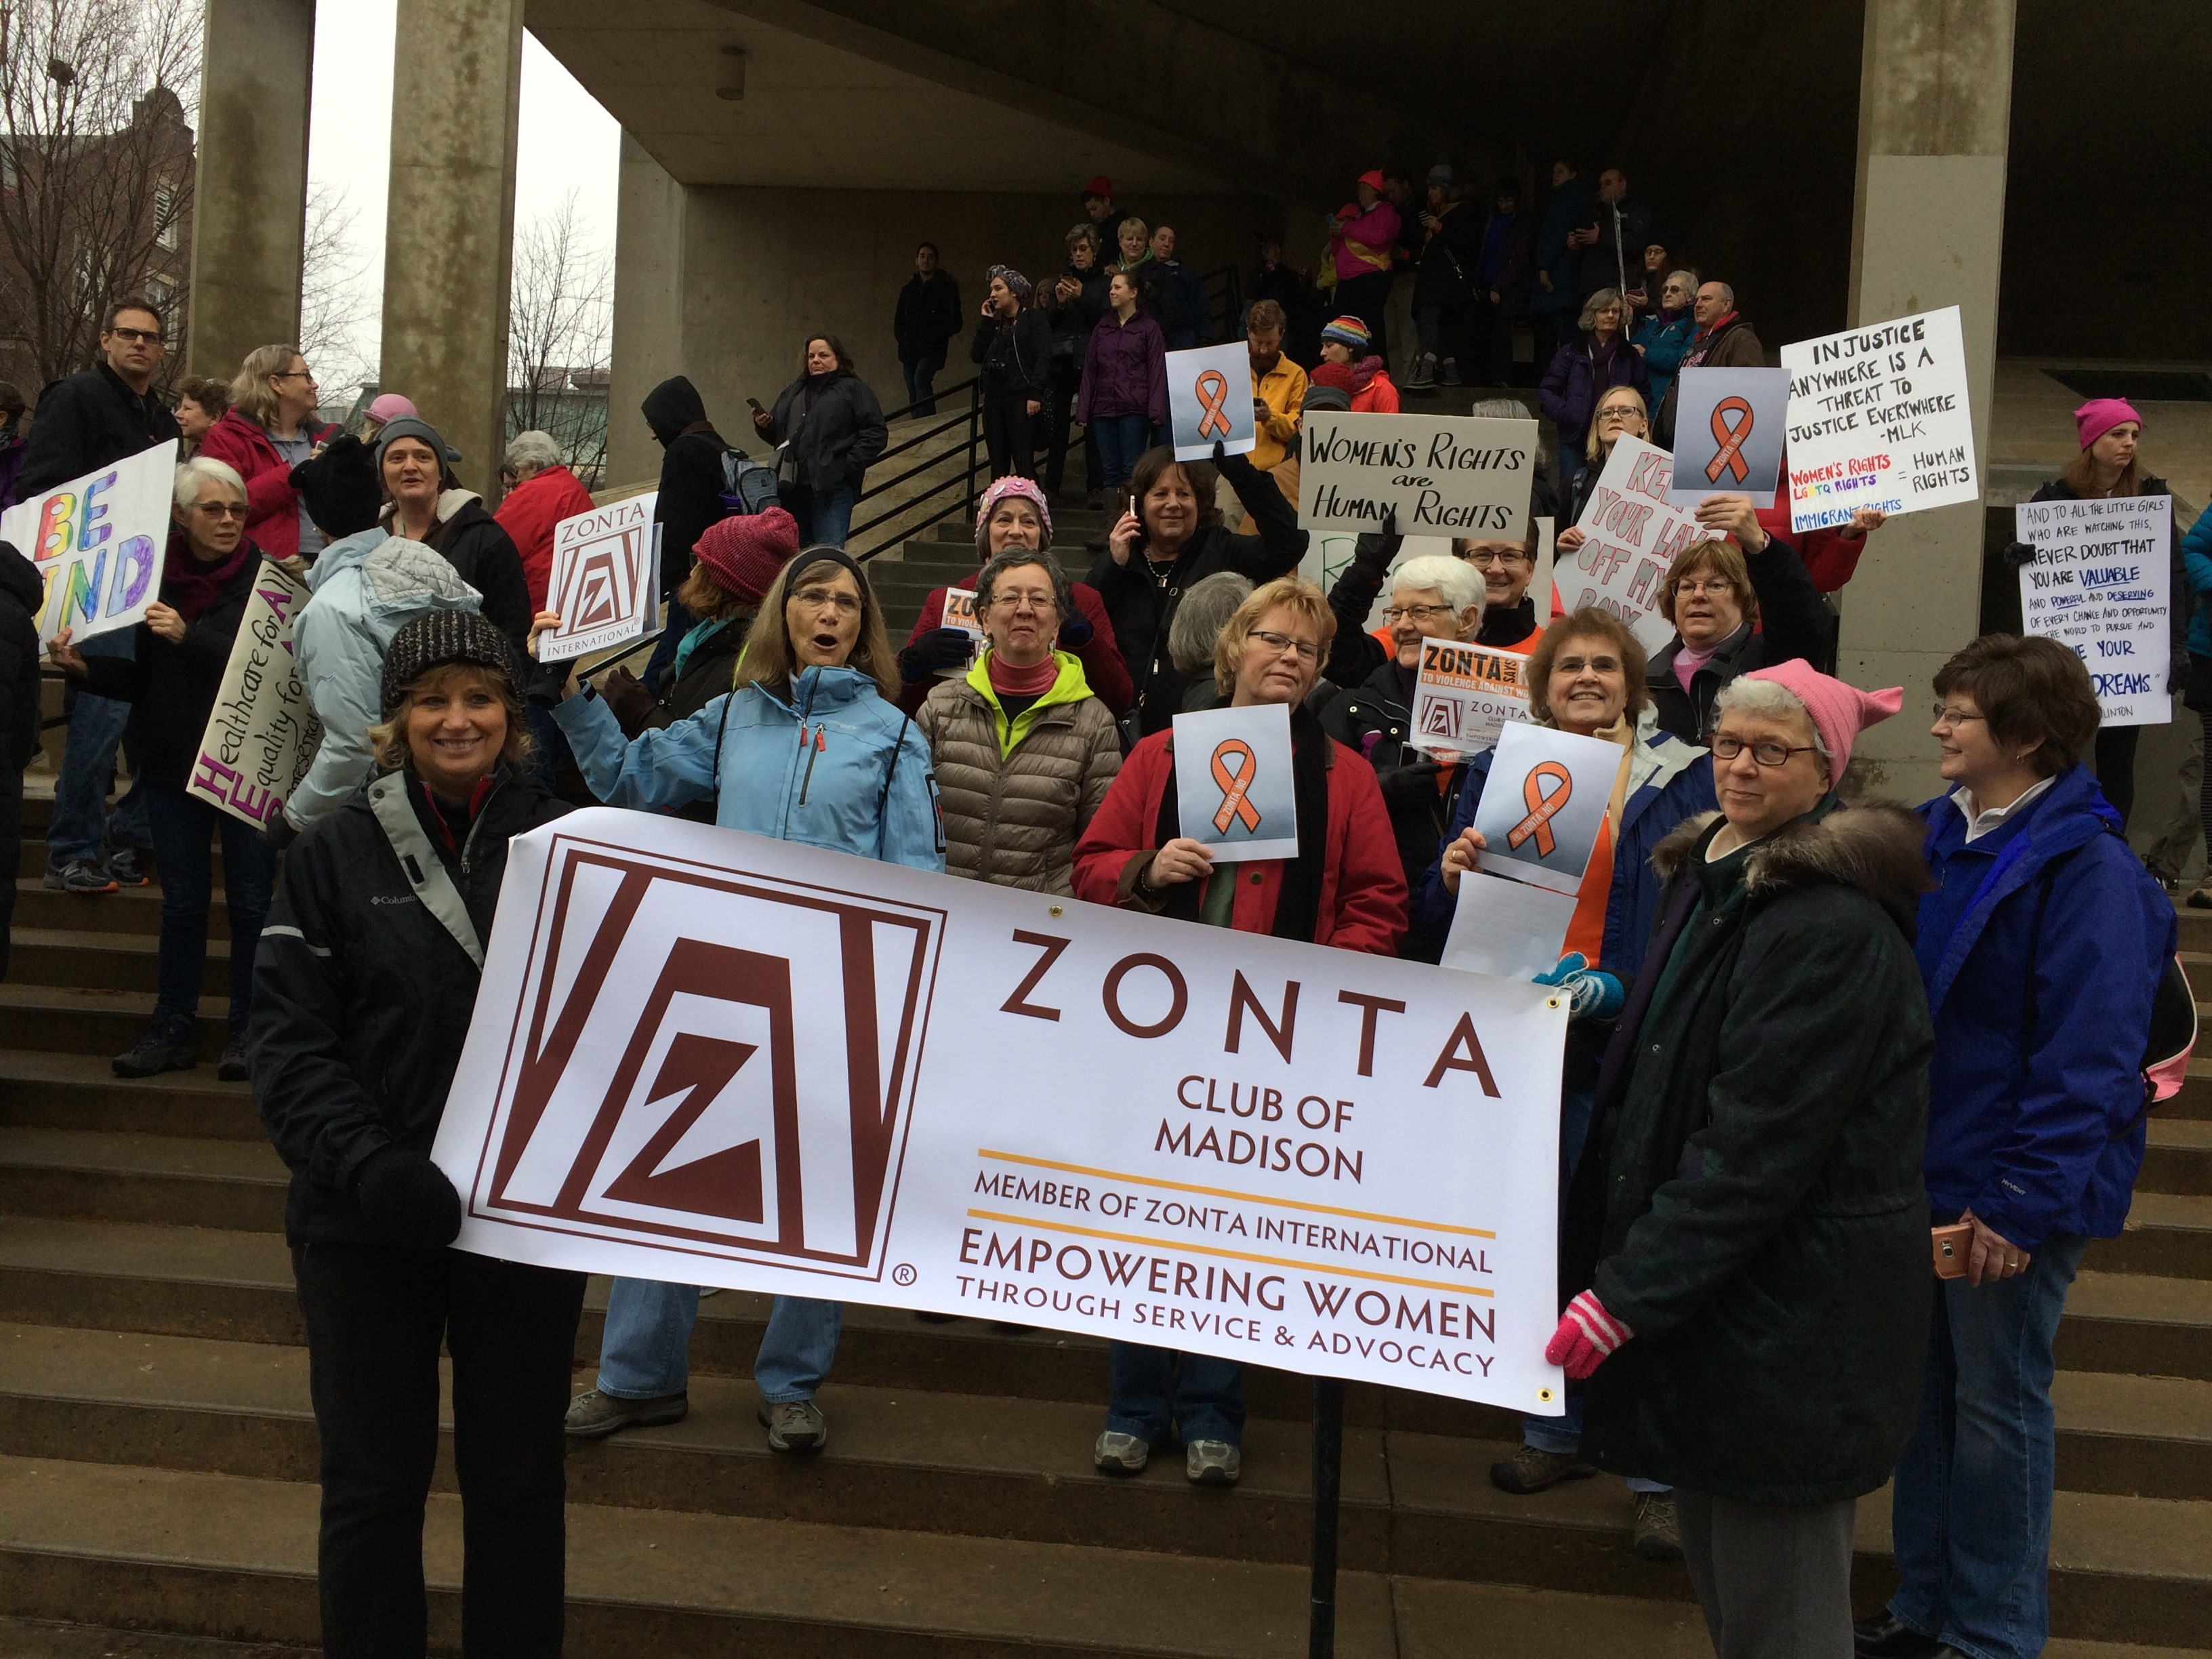 zonta district a member of zonta international please continue to be active in advocacy events in a non partisan fashion highlighting zonta s efforts to empower women